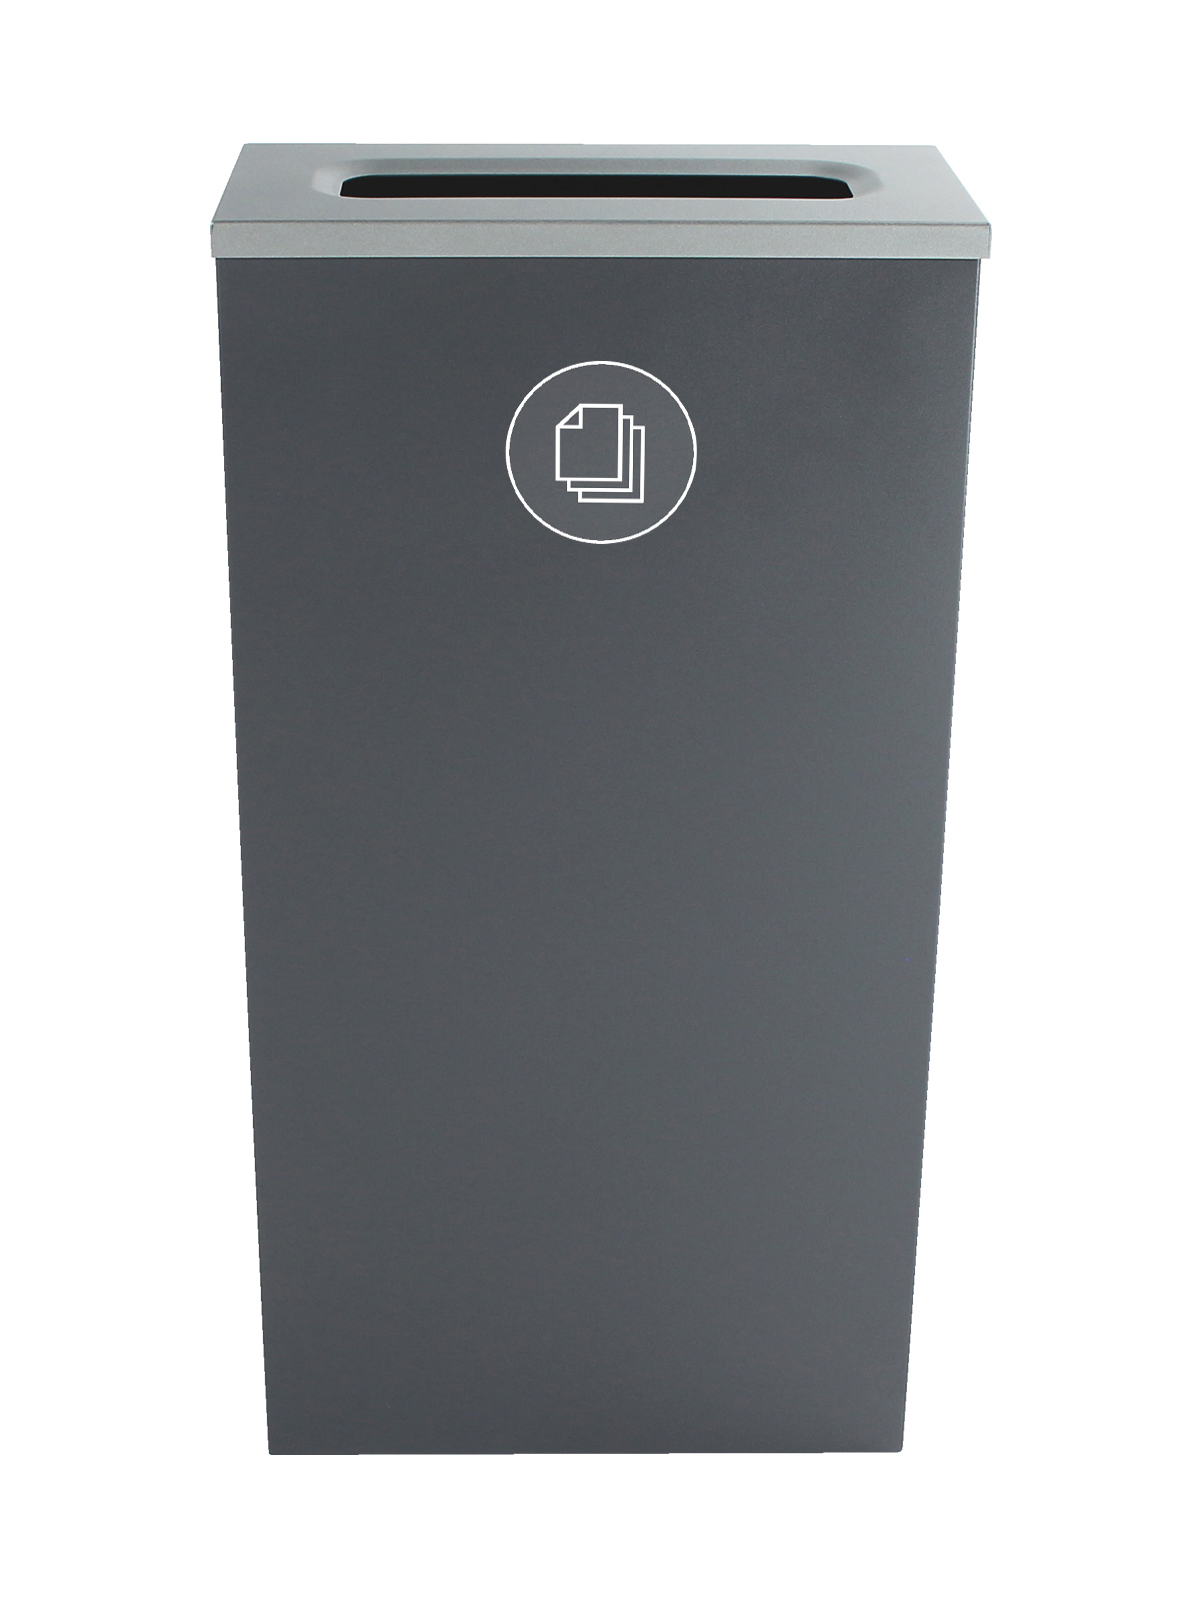 SPECTRUM - Single - Cube Slim - Paper - Slot - Grey